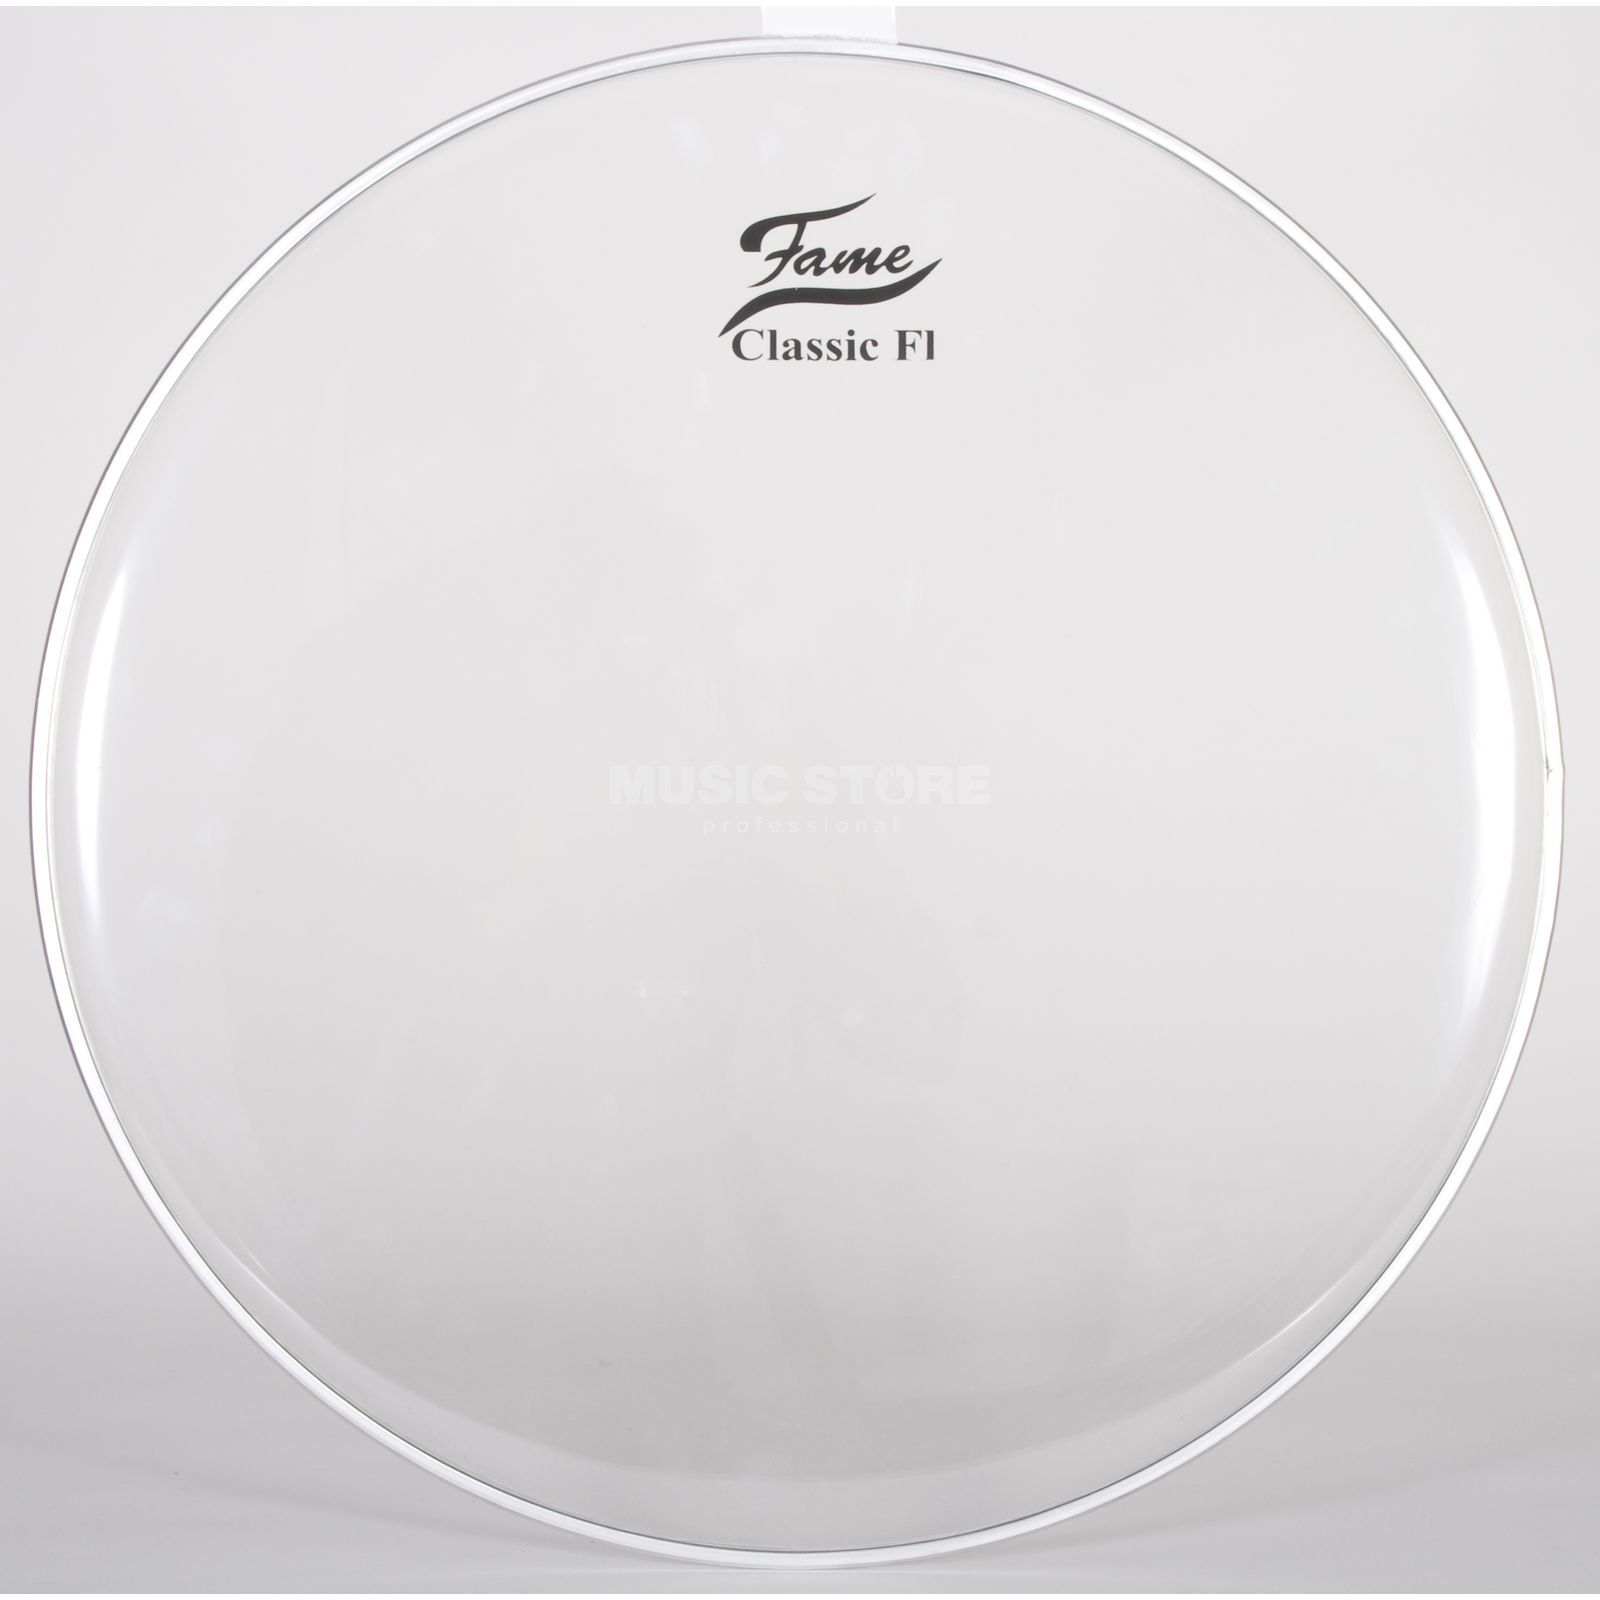 "Fame Bass Drum Head Classic F1 20"", clear Produktbillede"